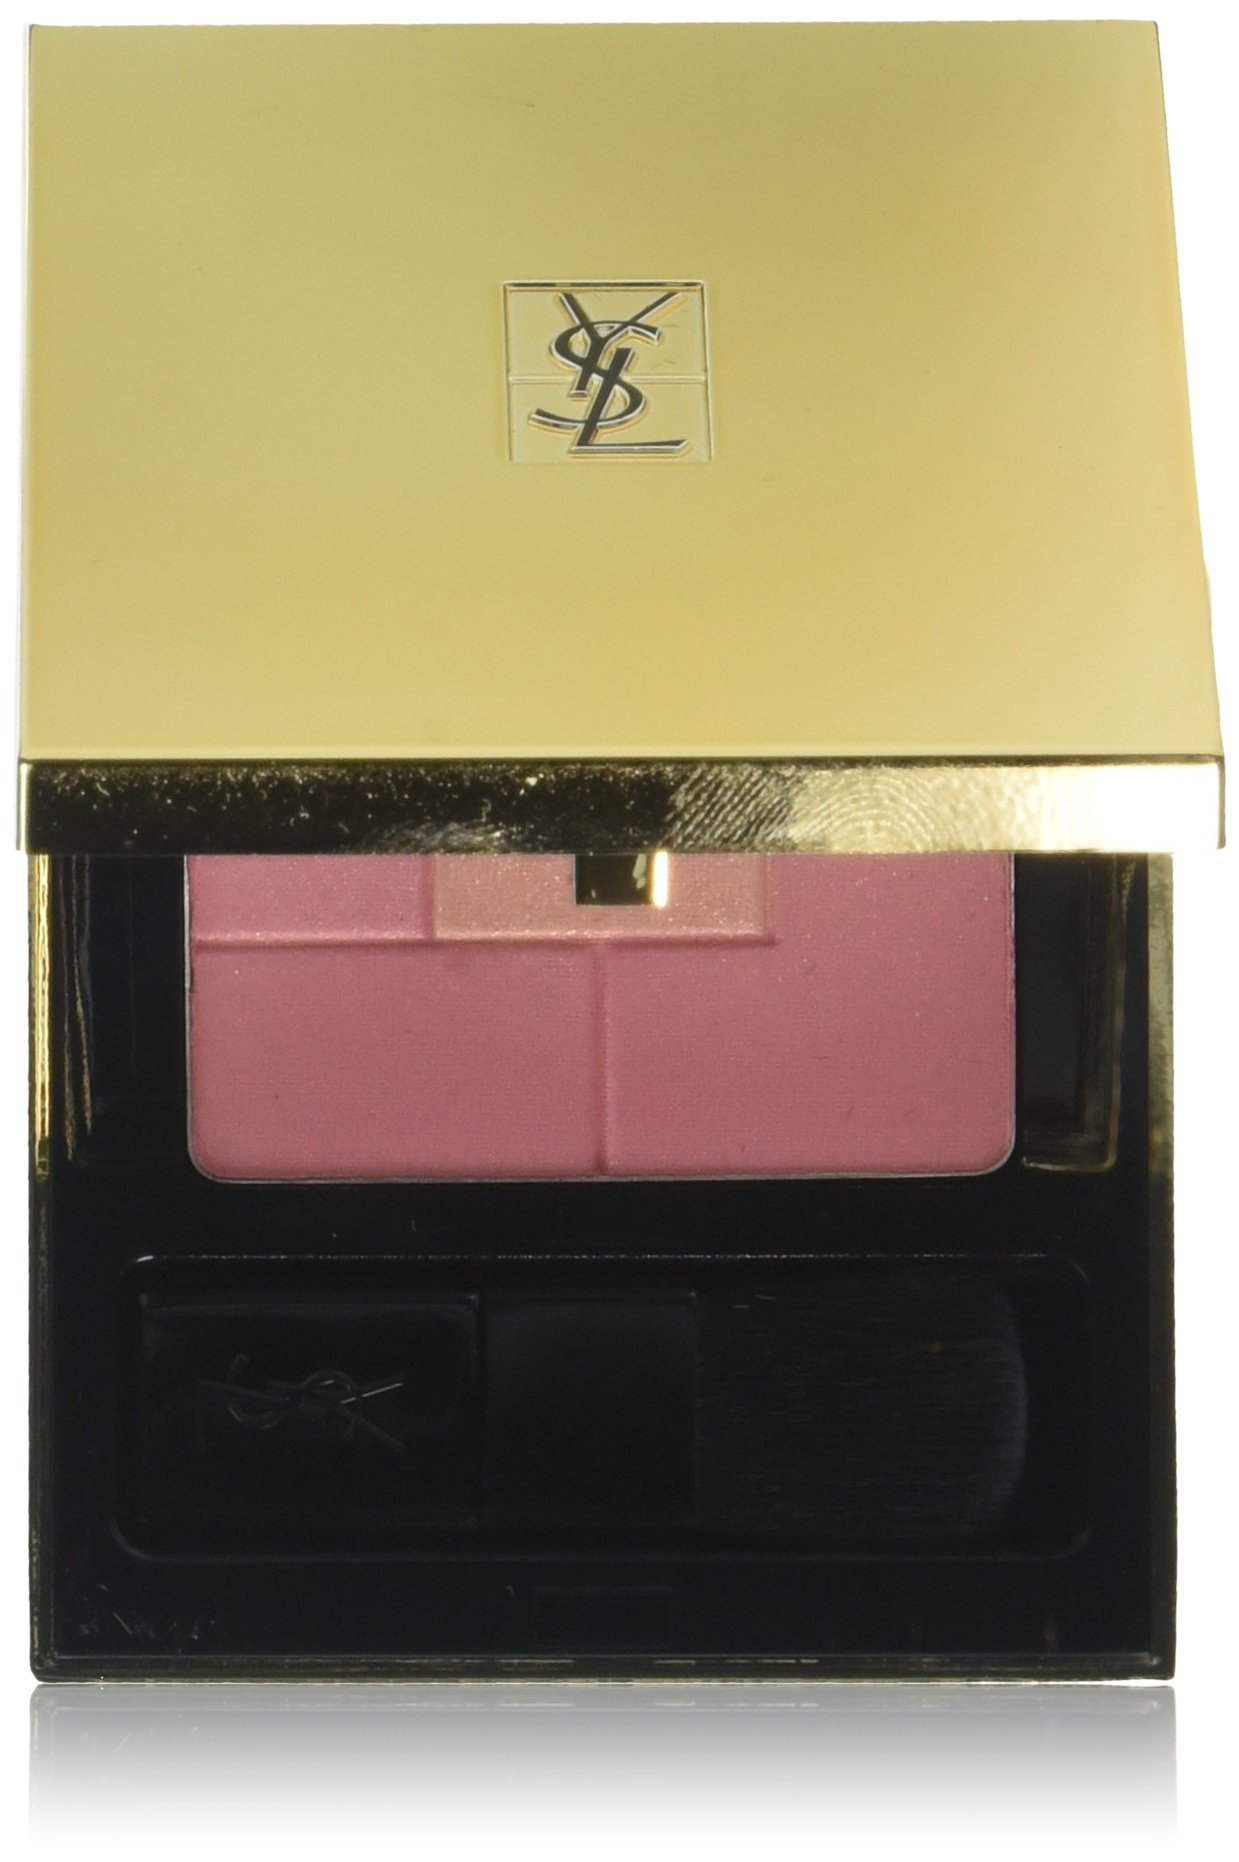 Yves Saint Laurent Volupte Heart of Light Powder Blush, No. 6, 0.31 Ounce